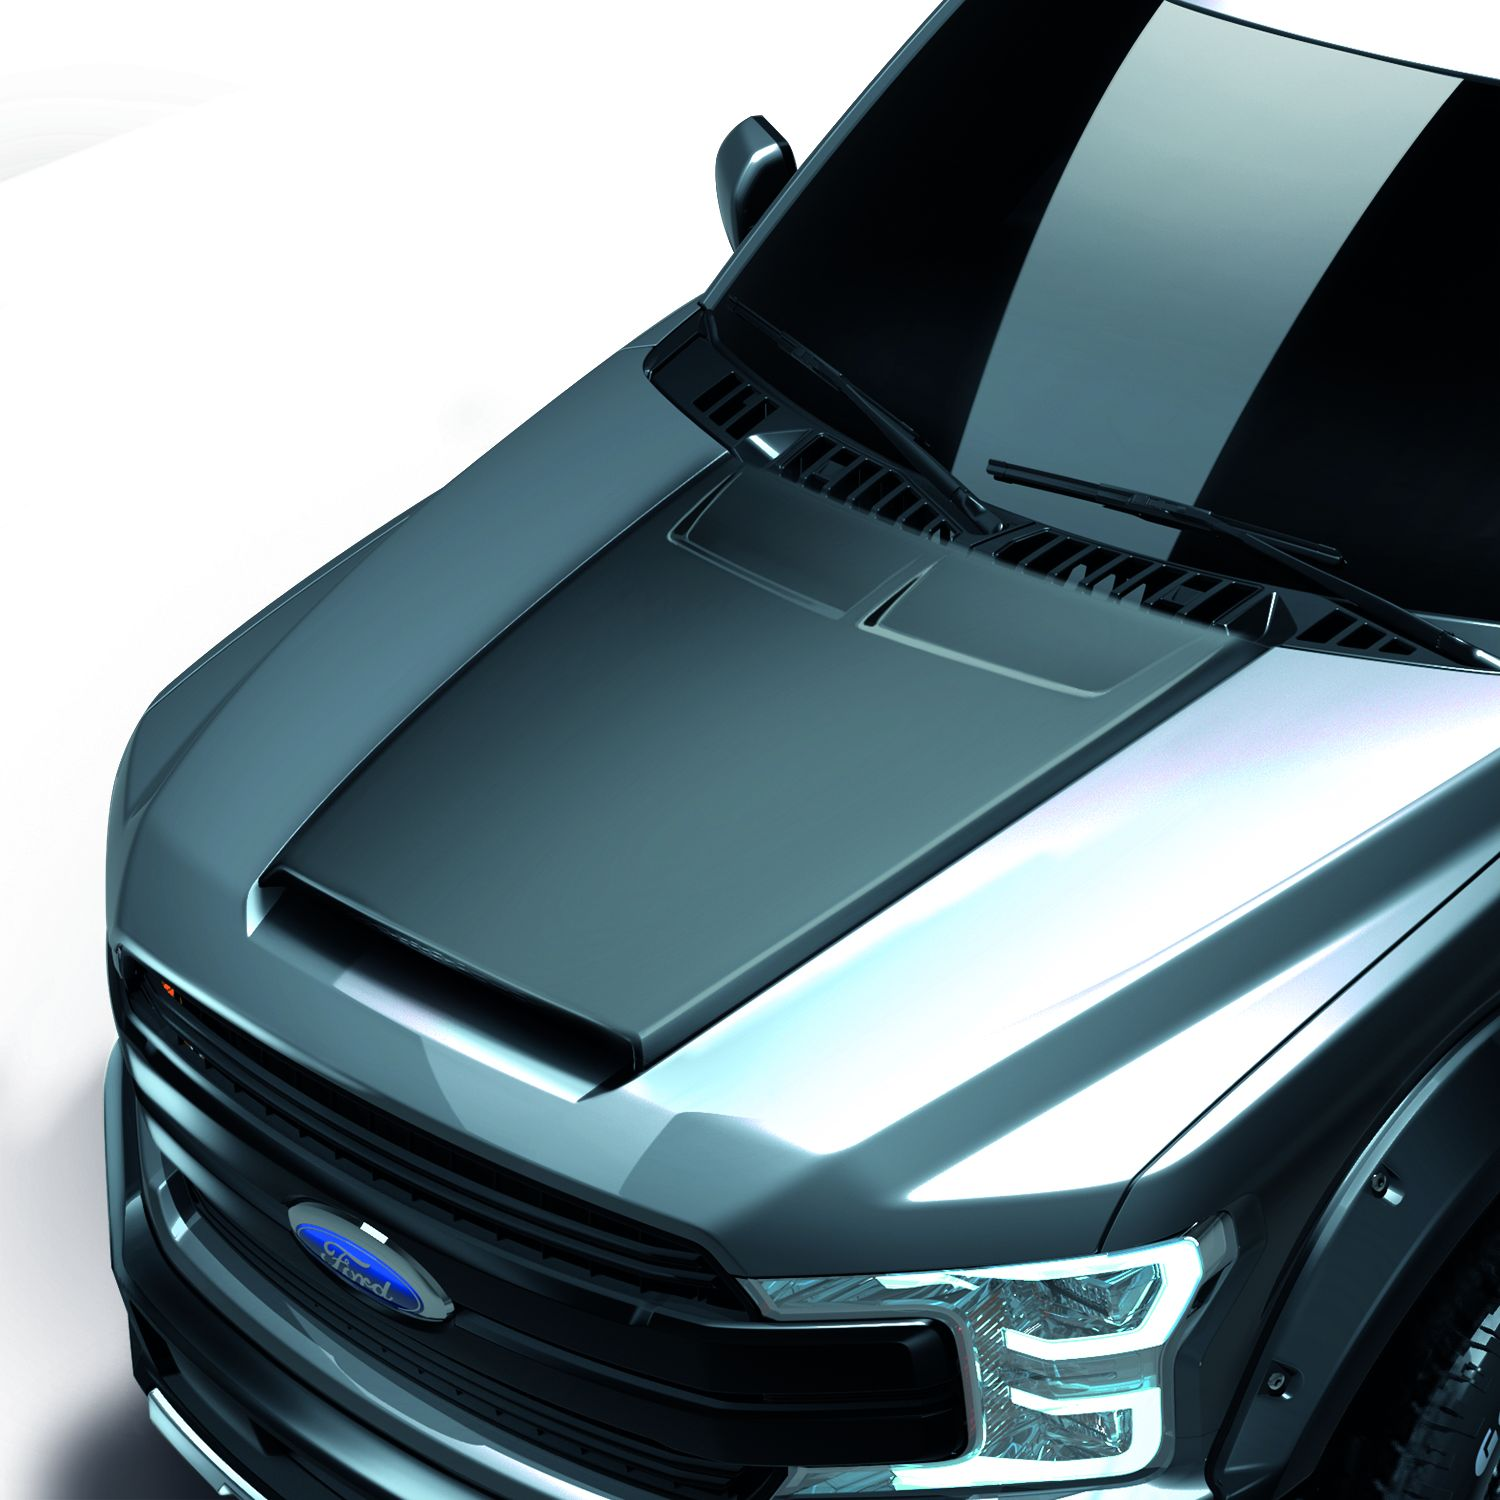 1129cpnufo25a01 Air Design Hood Scoop Body Styling